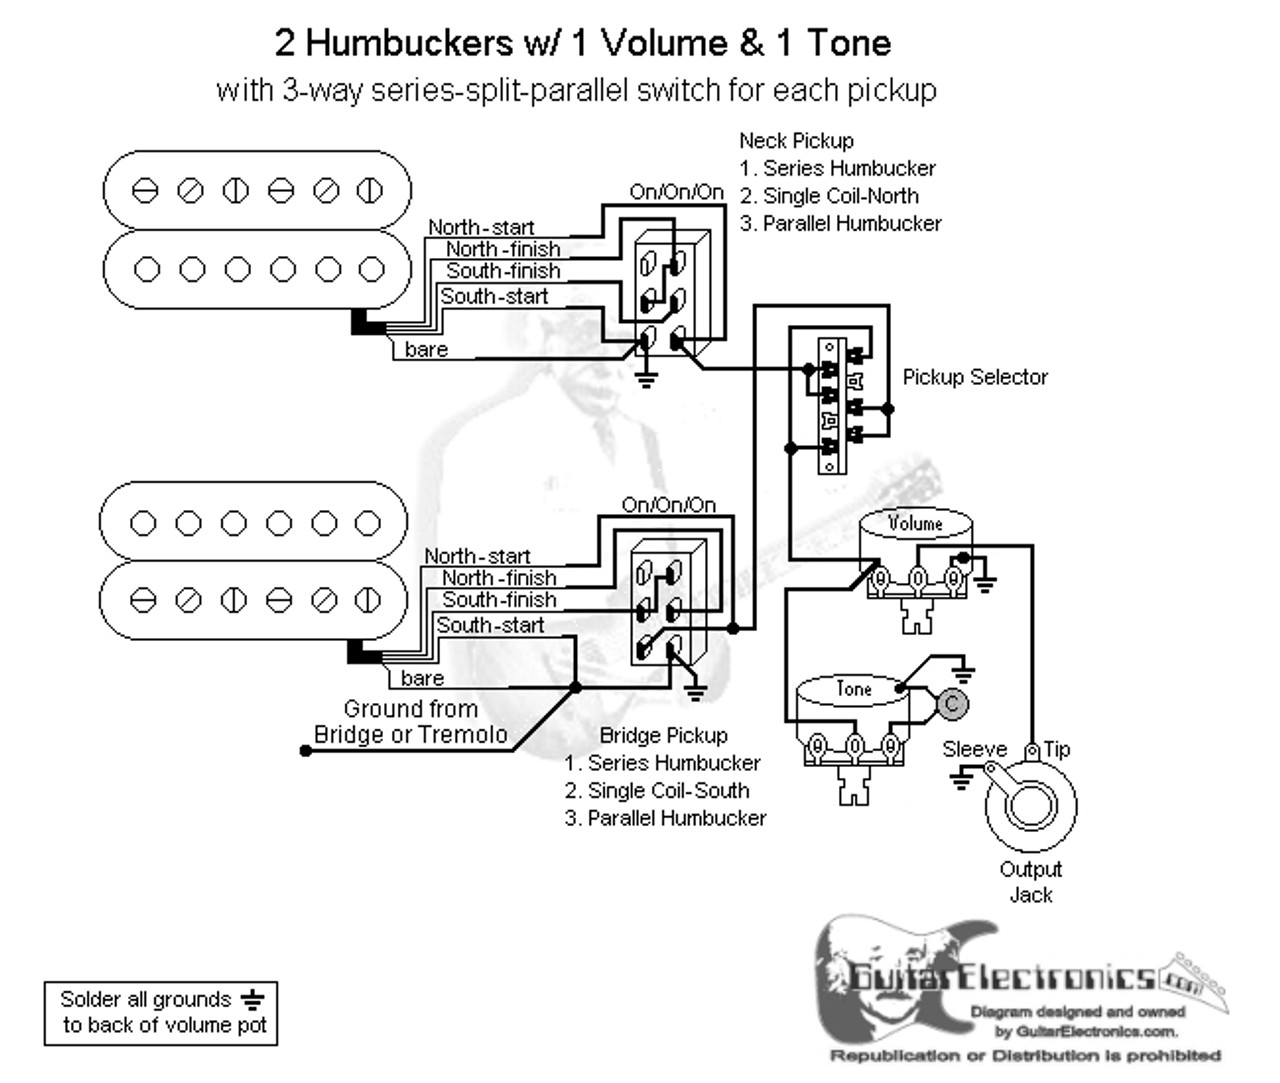 Guitar Wiring Diagram 2 Humbucker 1 Volume 1 Tone from cdn11.bigcommerce.com